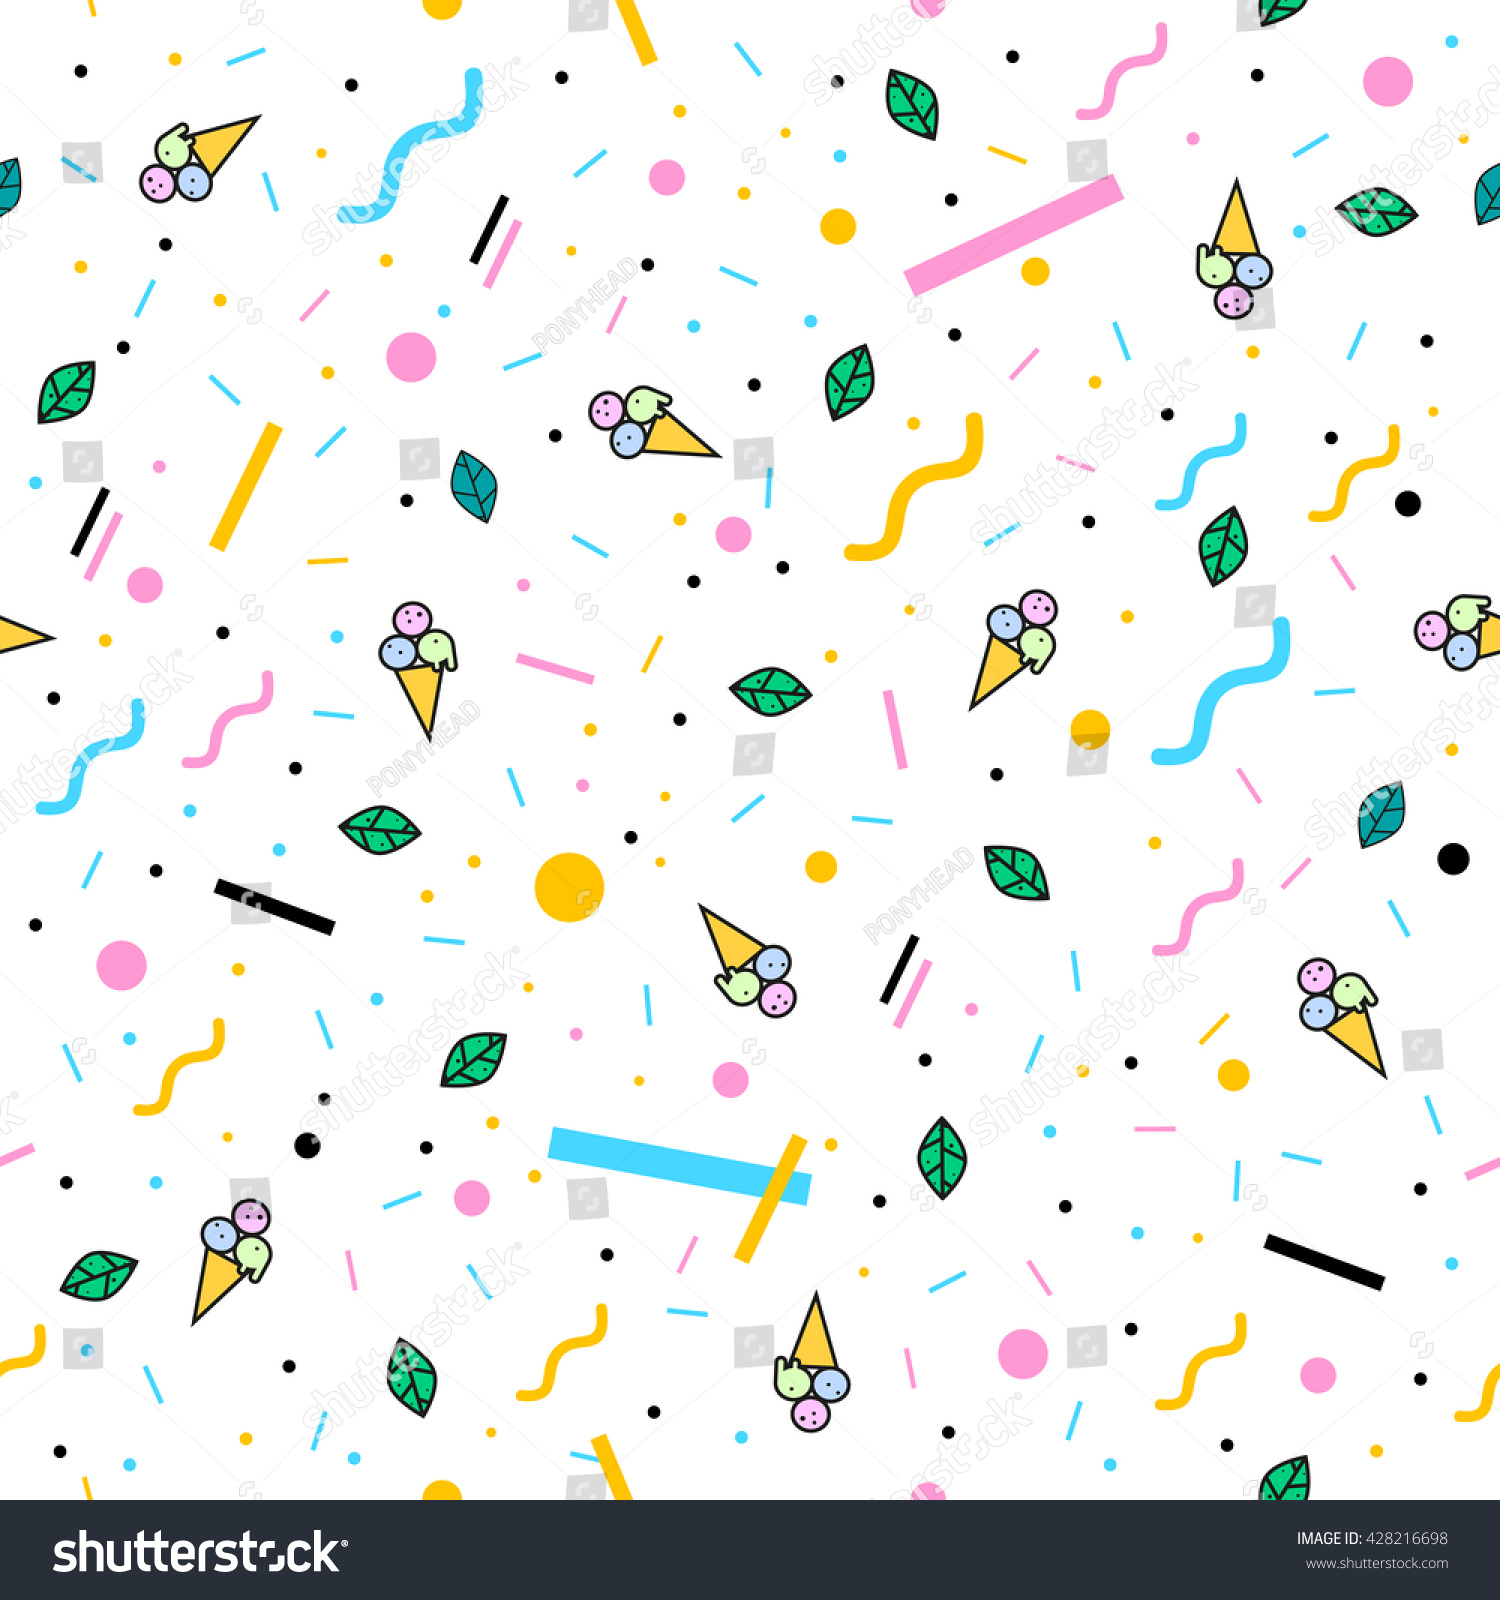 Summer Pattern With Ice Cream, Geometric Shapes And Green Leaves. Stylish  And Trendy Fabric